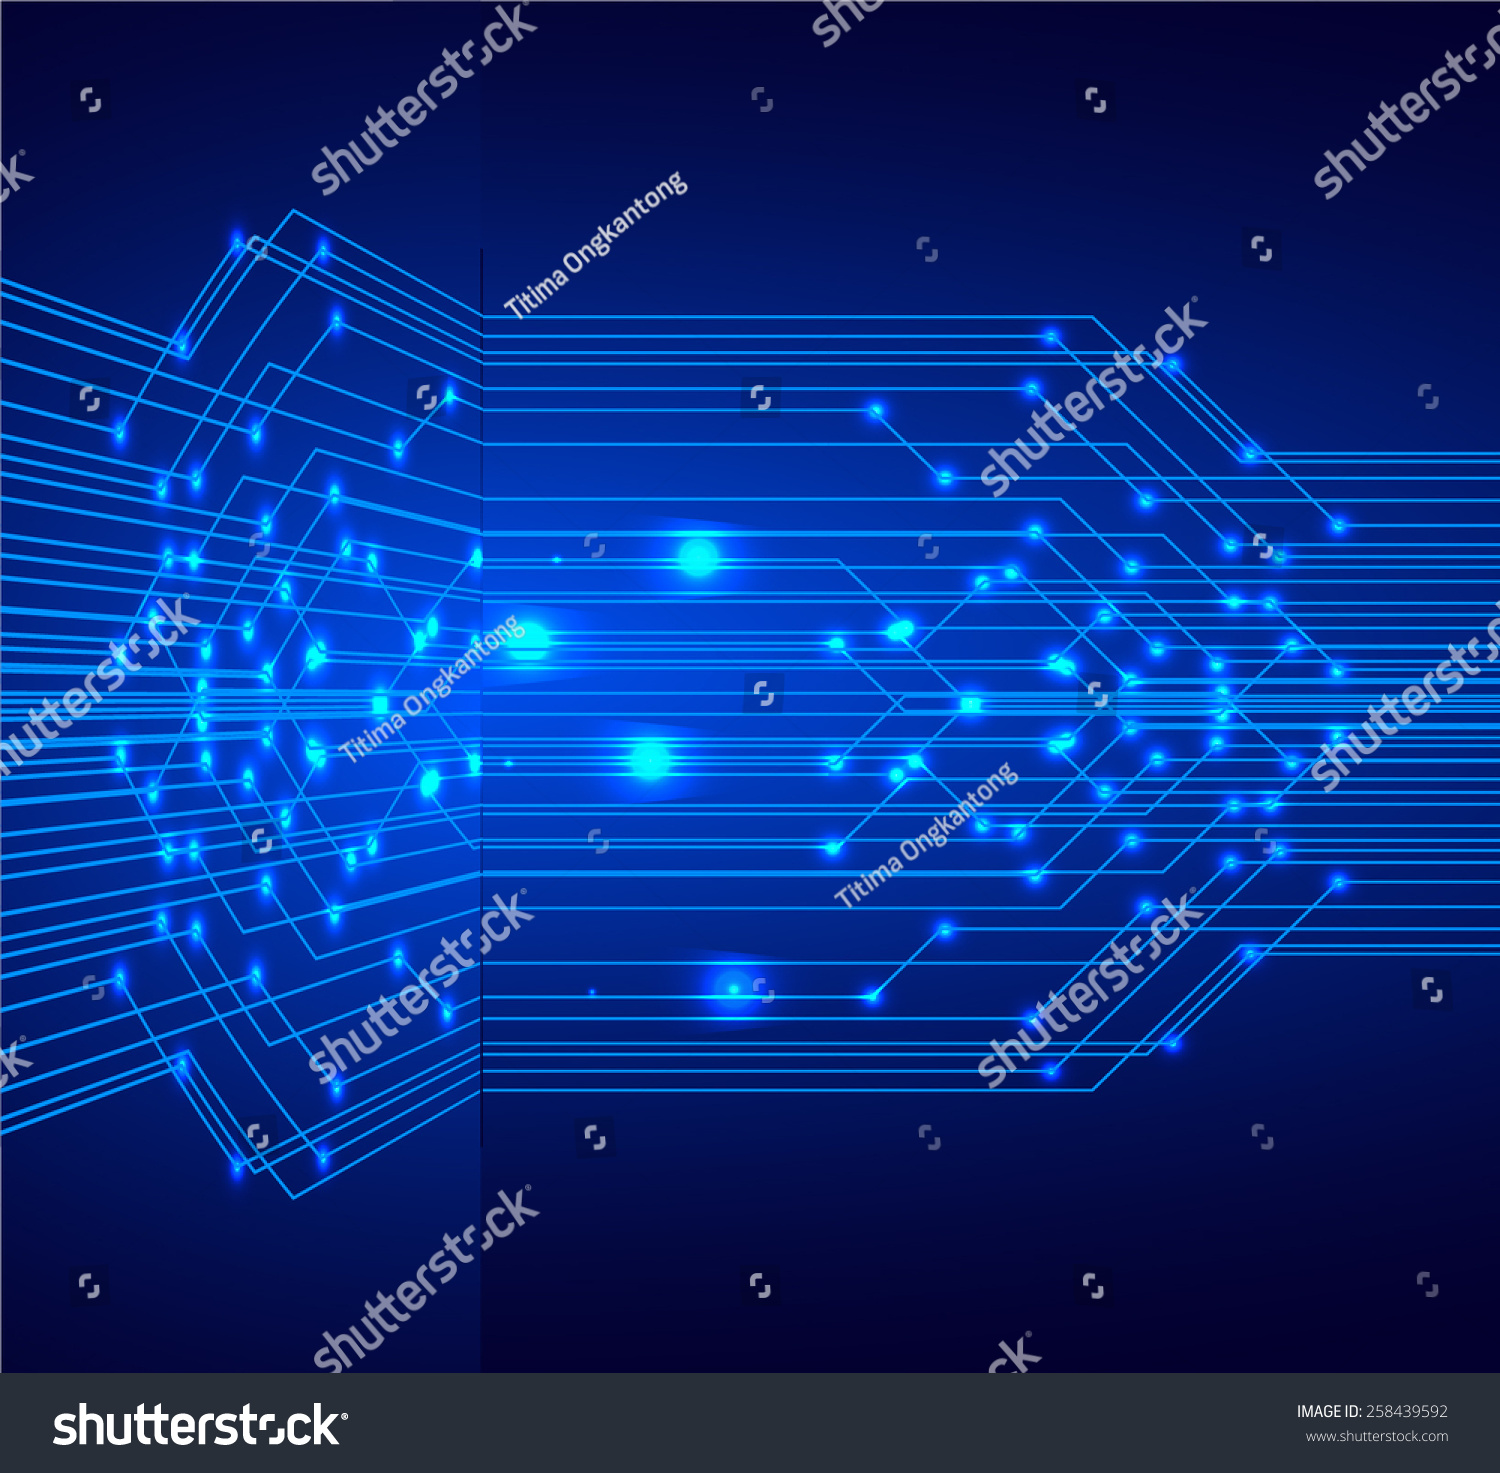 Blue Color Light Abstract Technology Background For Computer Code And Circuit Board Illustration